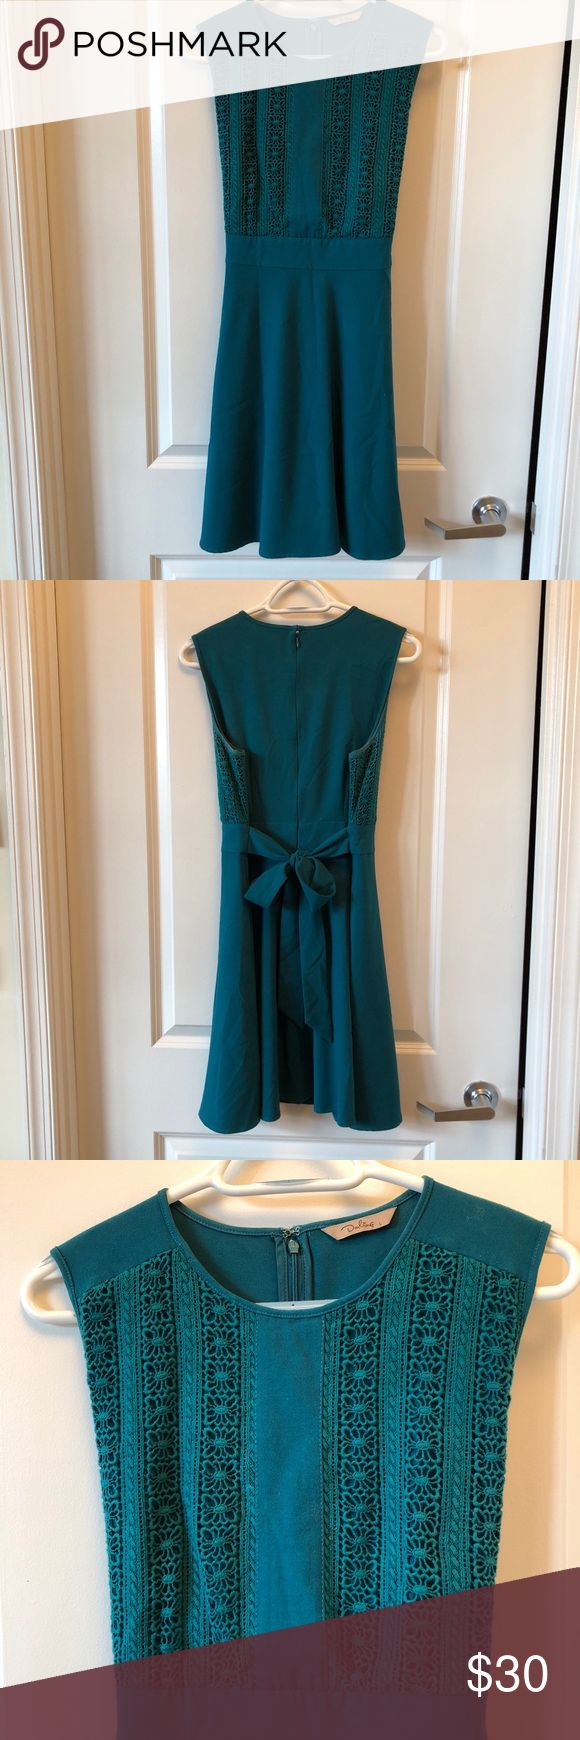 Teal Fit and Flare Eyelet Front Teal Fit and Flare Eyelet Front - Hidden zipper, ties for a bow in the back, heavy fabric for fall, and 39 in (at 5ft10in, it hits me slightly above the knee). It looks fantastic with tights and boots! There is no wear and tear visible on the fabric at all. Dresses